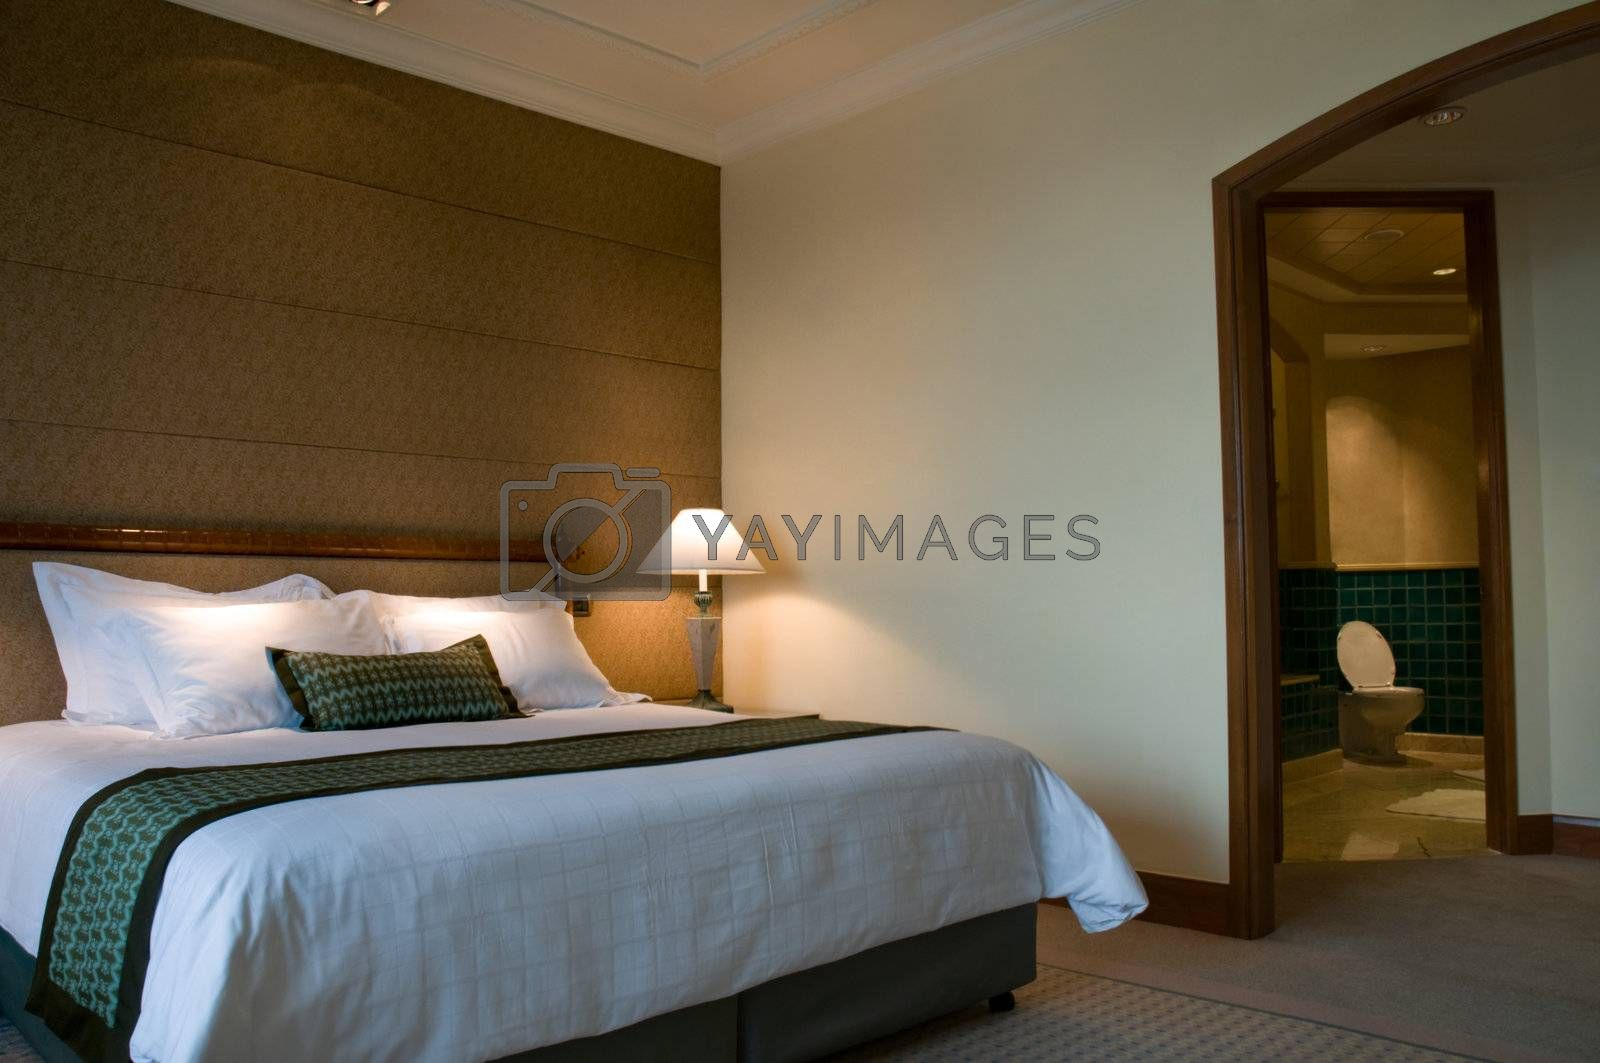 King size bed and luxury bathroom of a five star hotel suite room